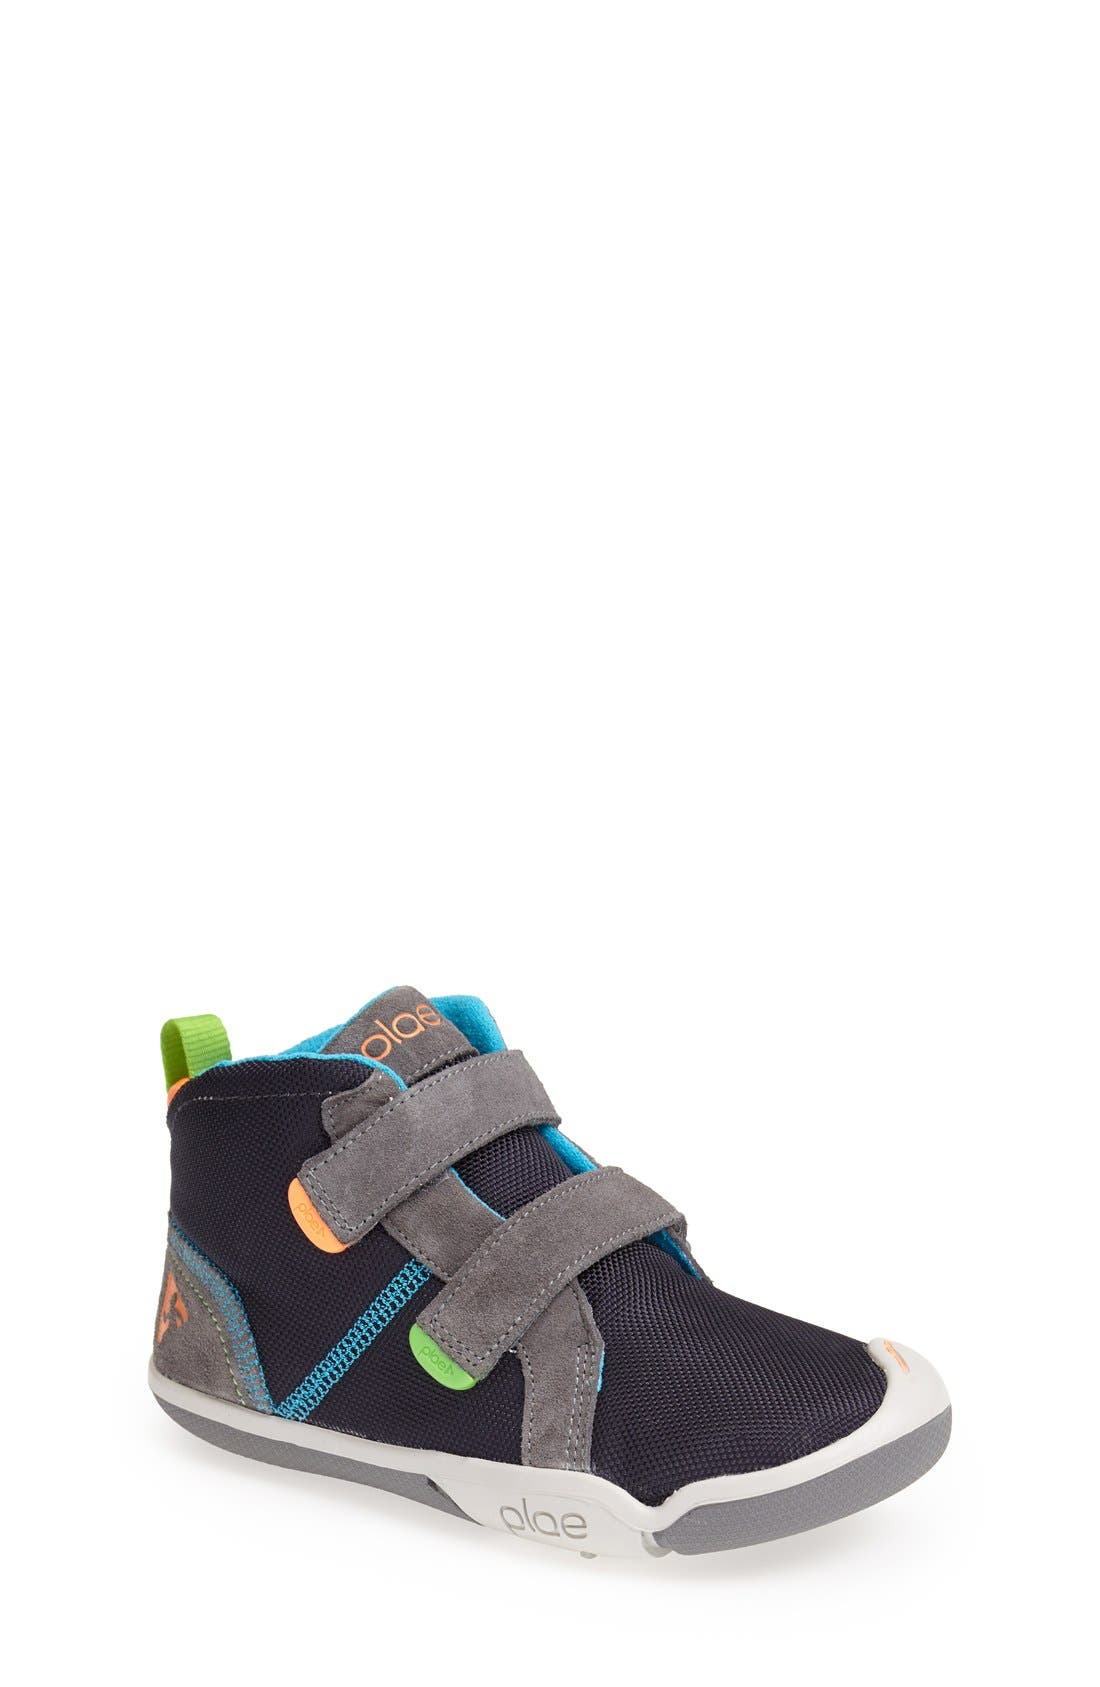 Alternate Image 1 Selected - PLAE 'Max' Customizable High Top Sneaker (Toddler & Little Kid)